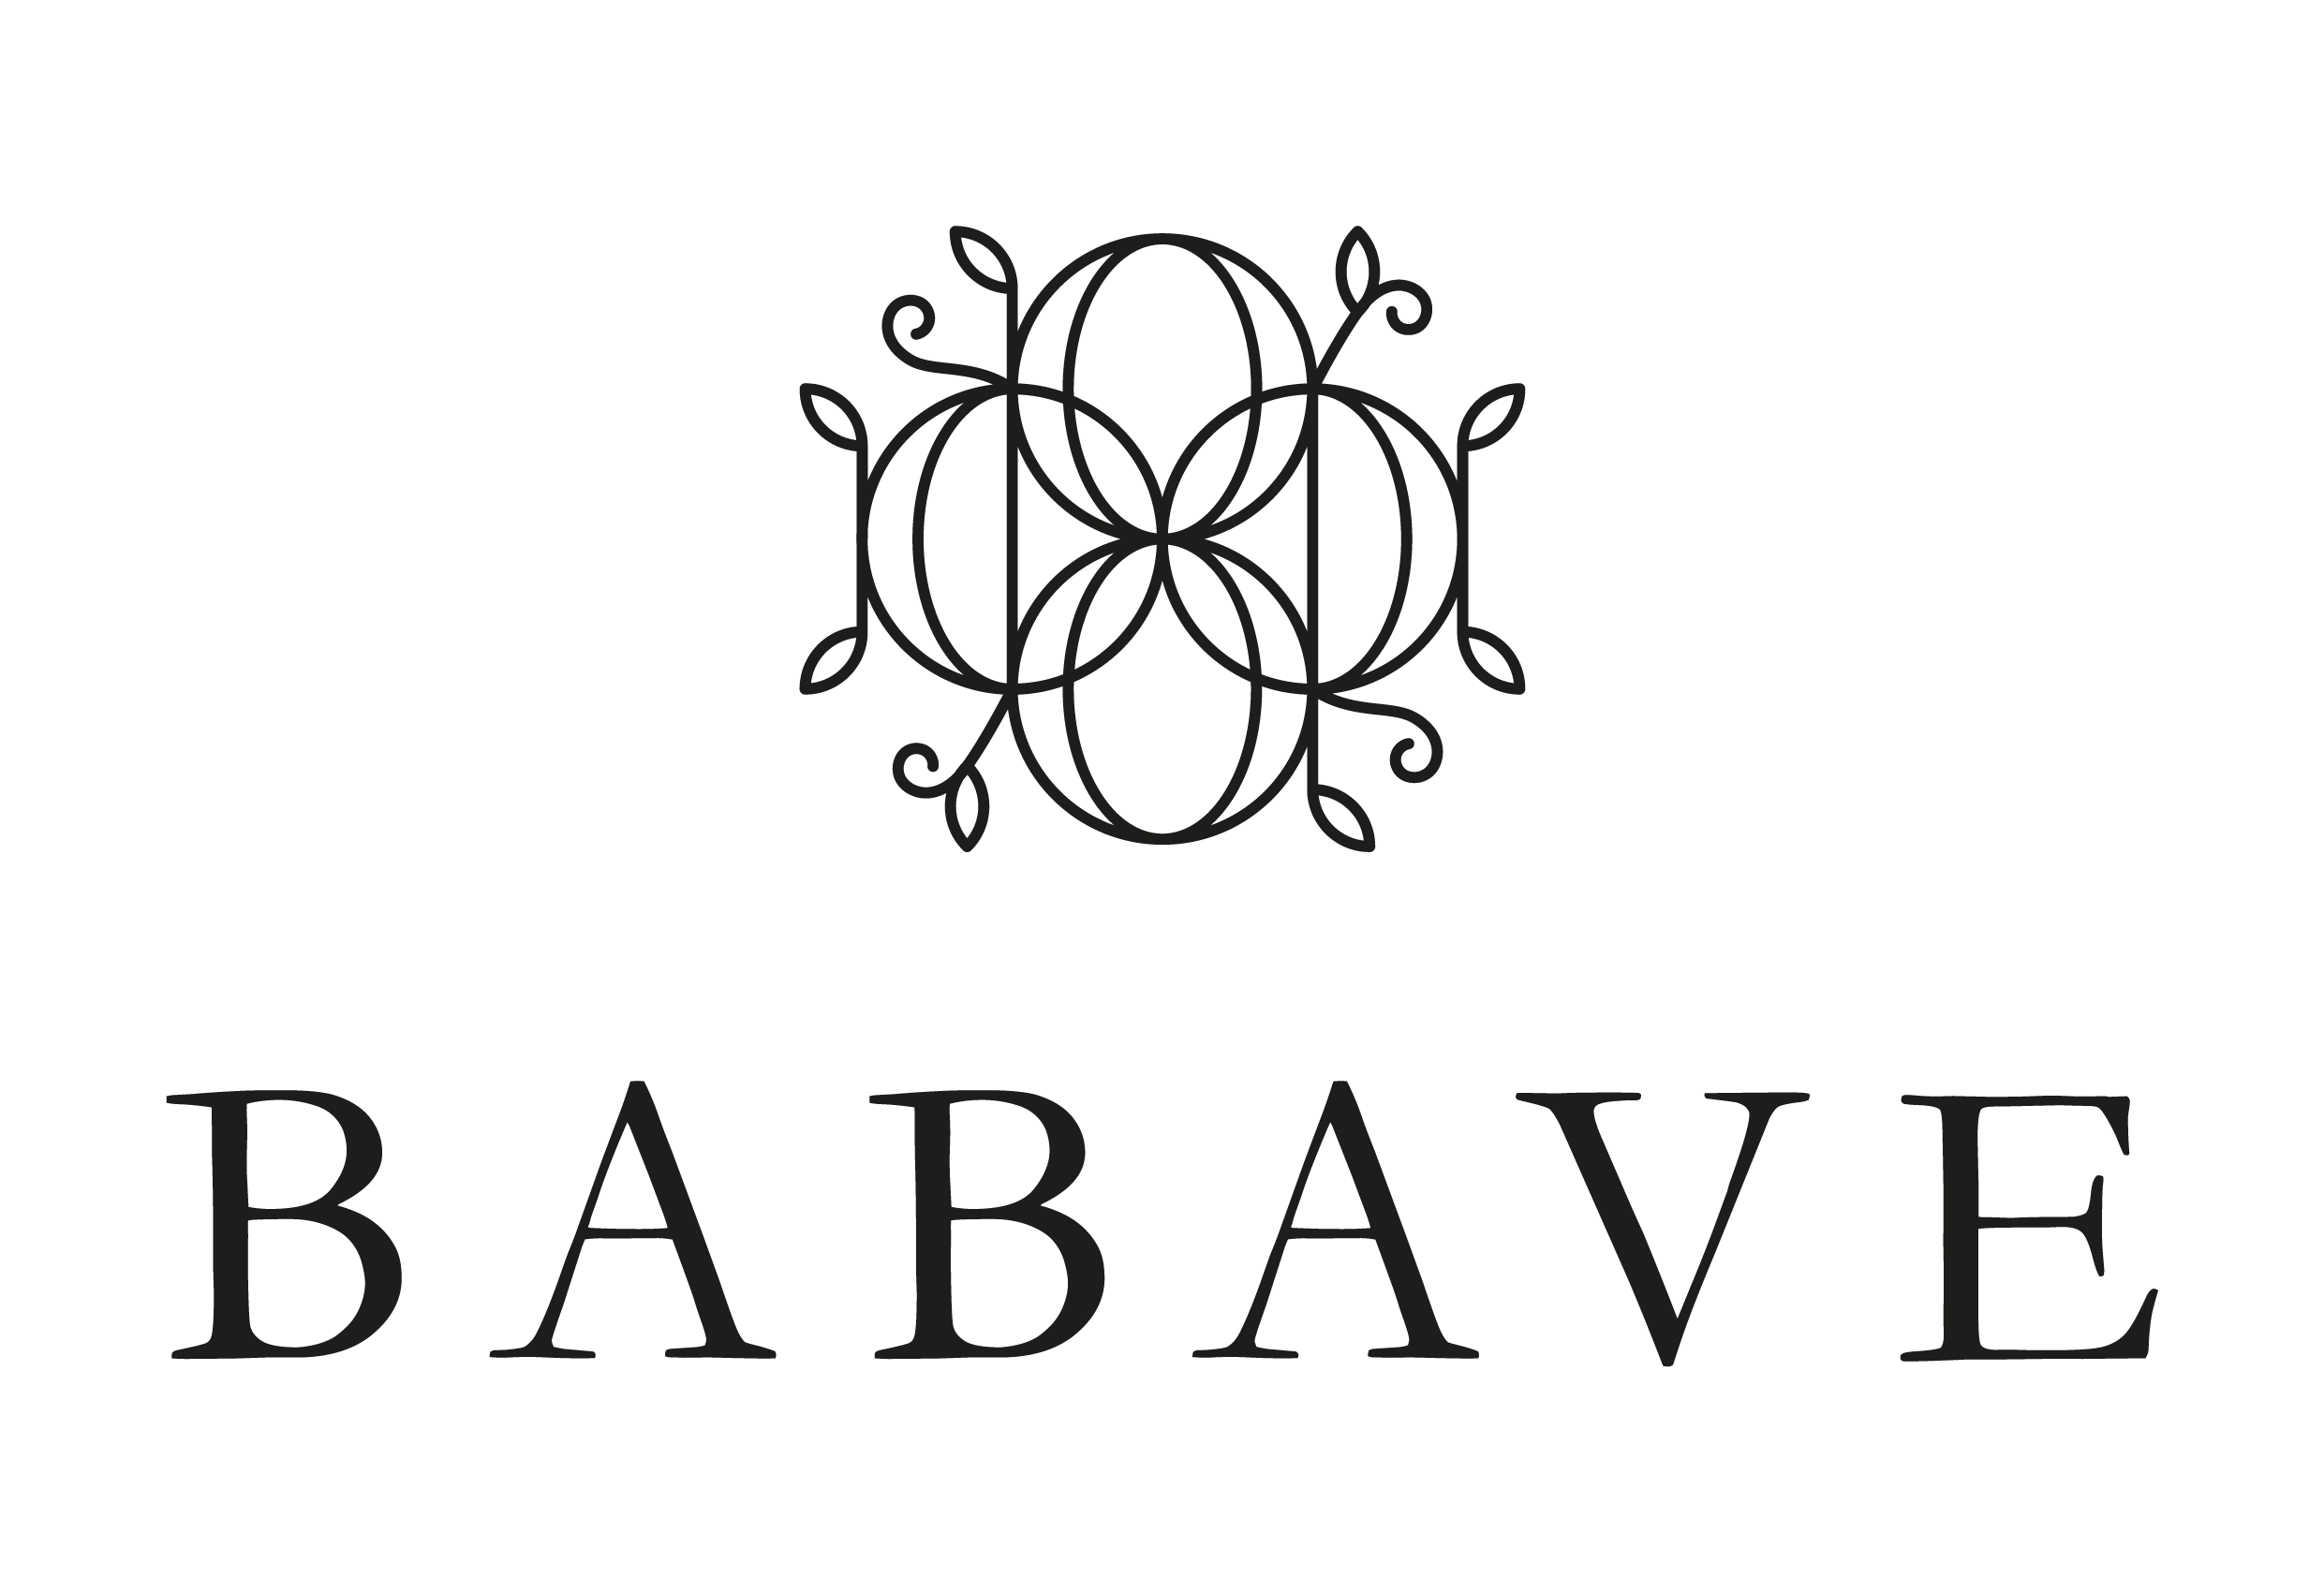 Babave